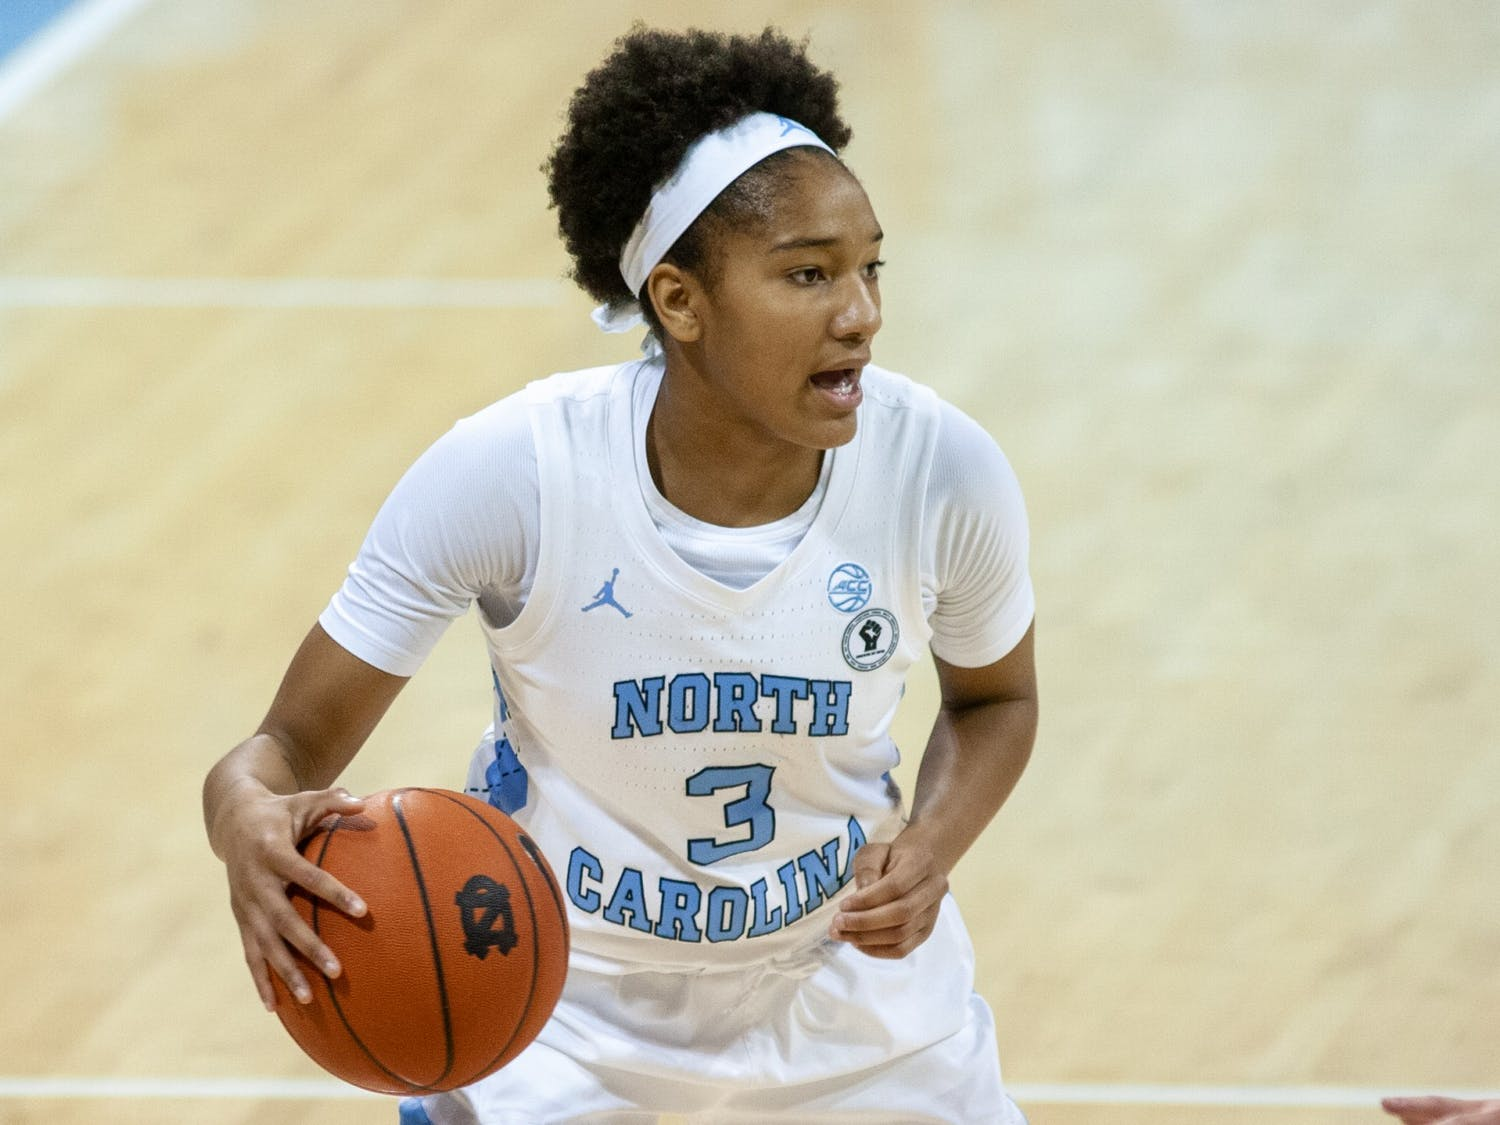 UNC first year guard Kennedy Todd-Williams (3) prepares to pass the ball during a game against Wake Forest on Sunday, Dec. 20 2020. UNC beat Wake Forest 77-74 in overtime.